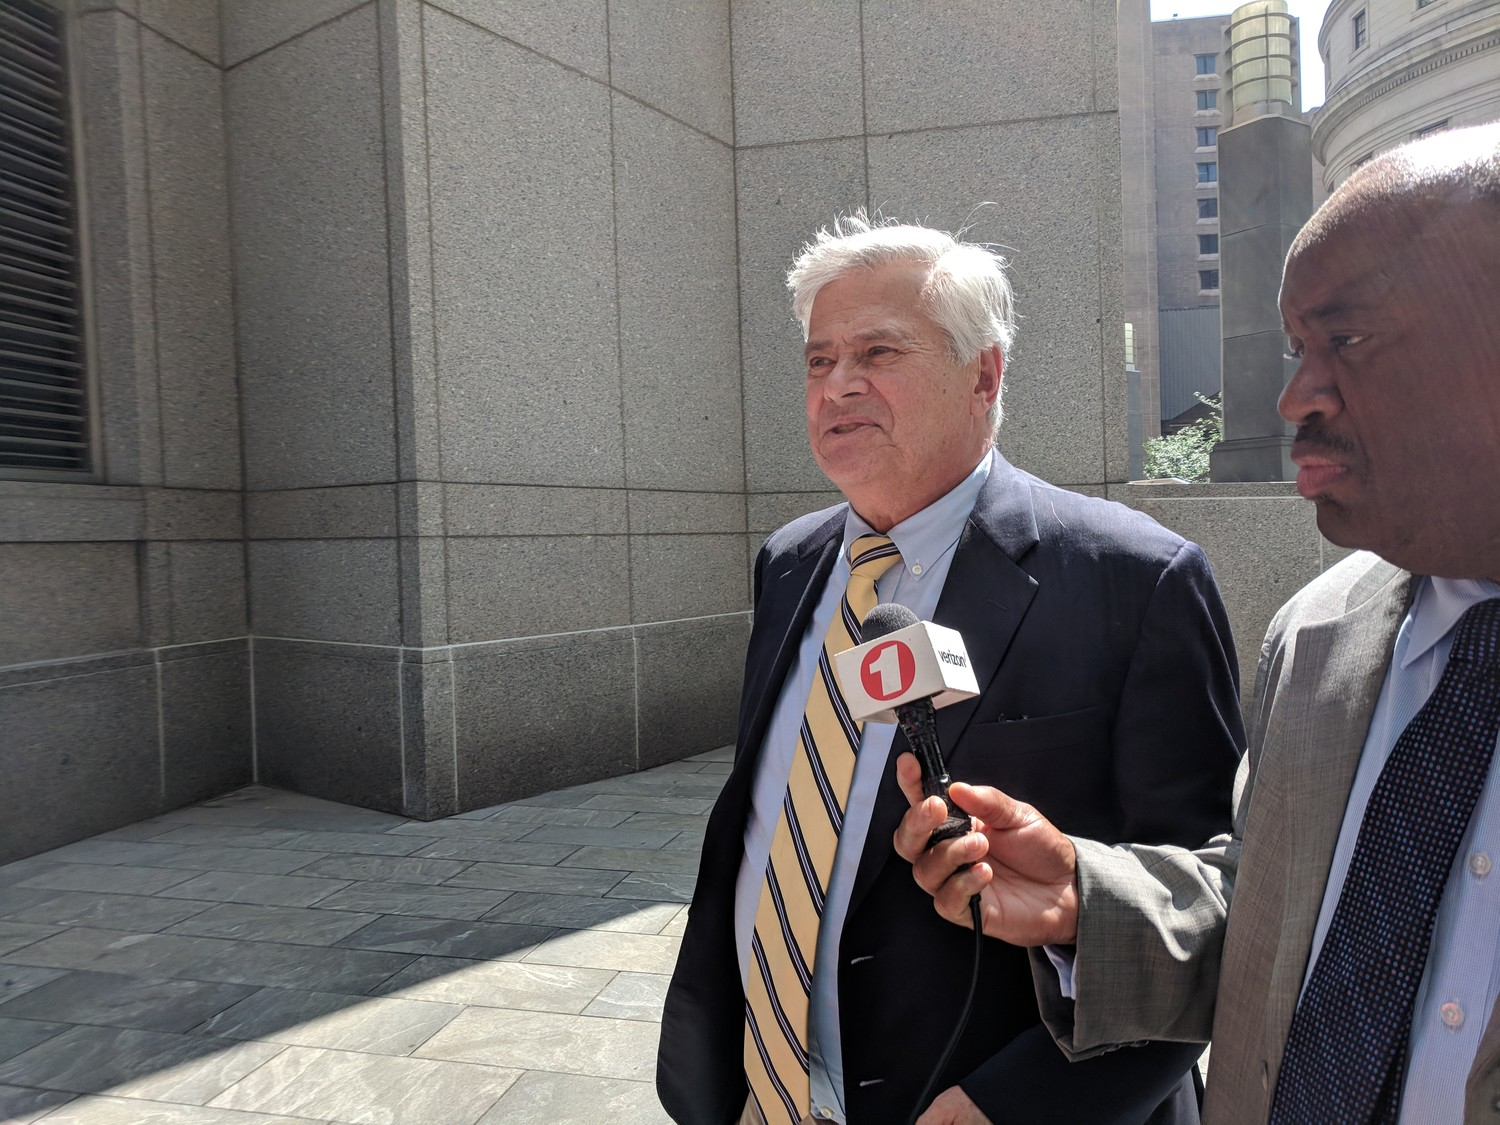 After spending the day in court in Manhattan on June 11, former Senate Majority Leader Dean Skelos told reporters that he was ready for the retrial to be over.